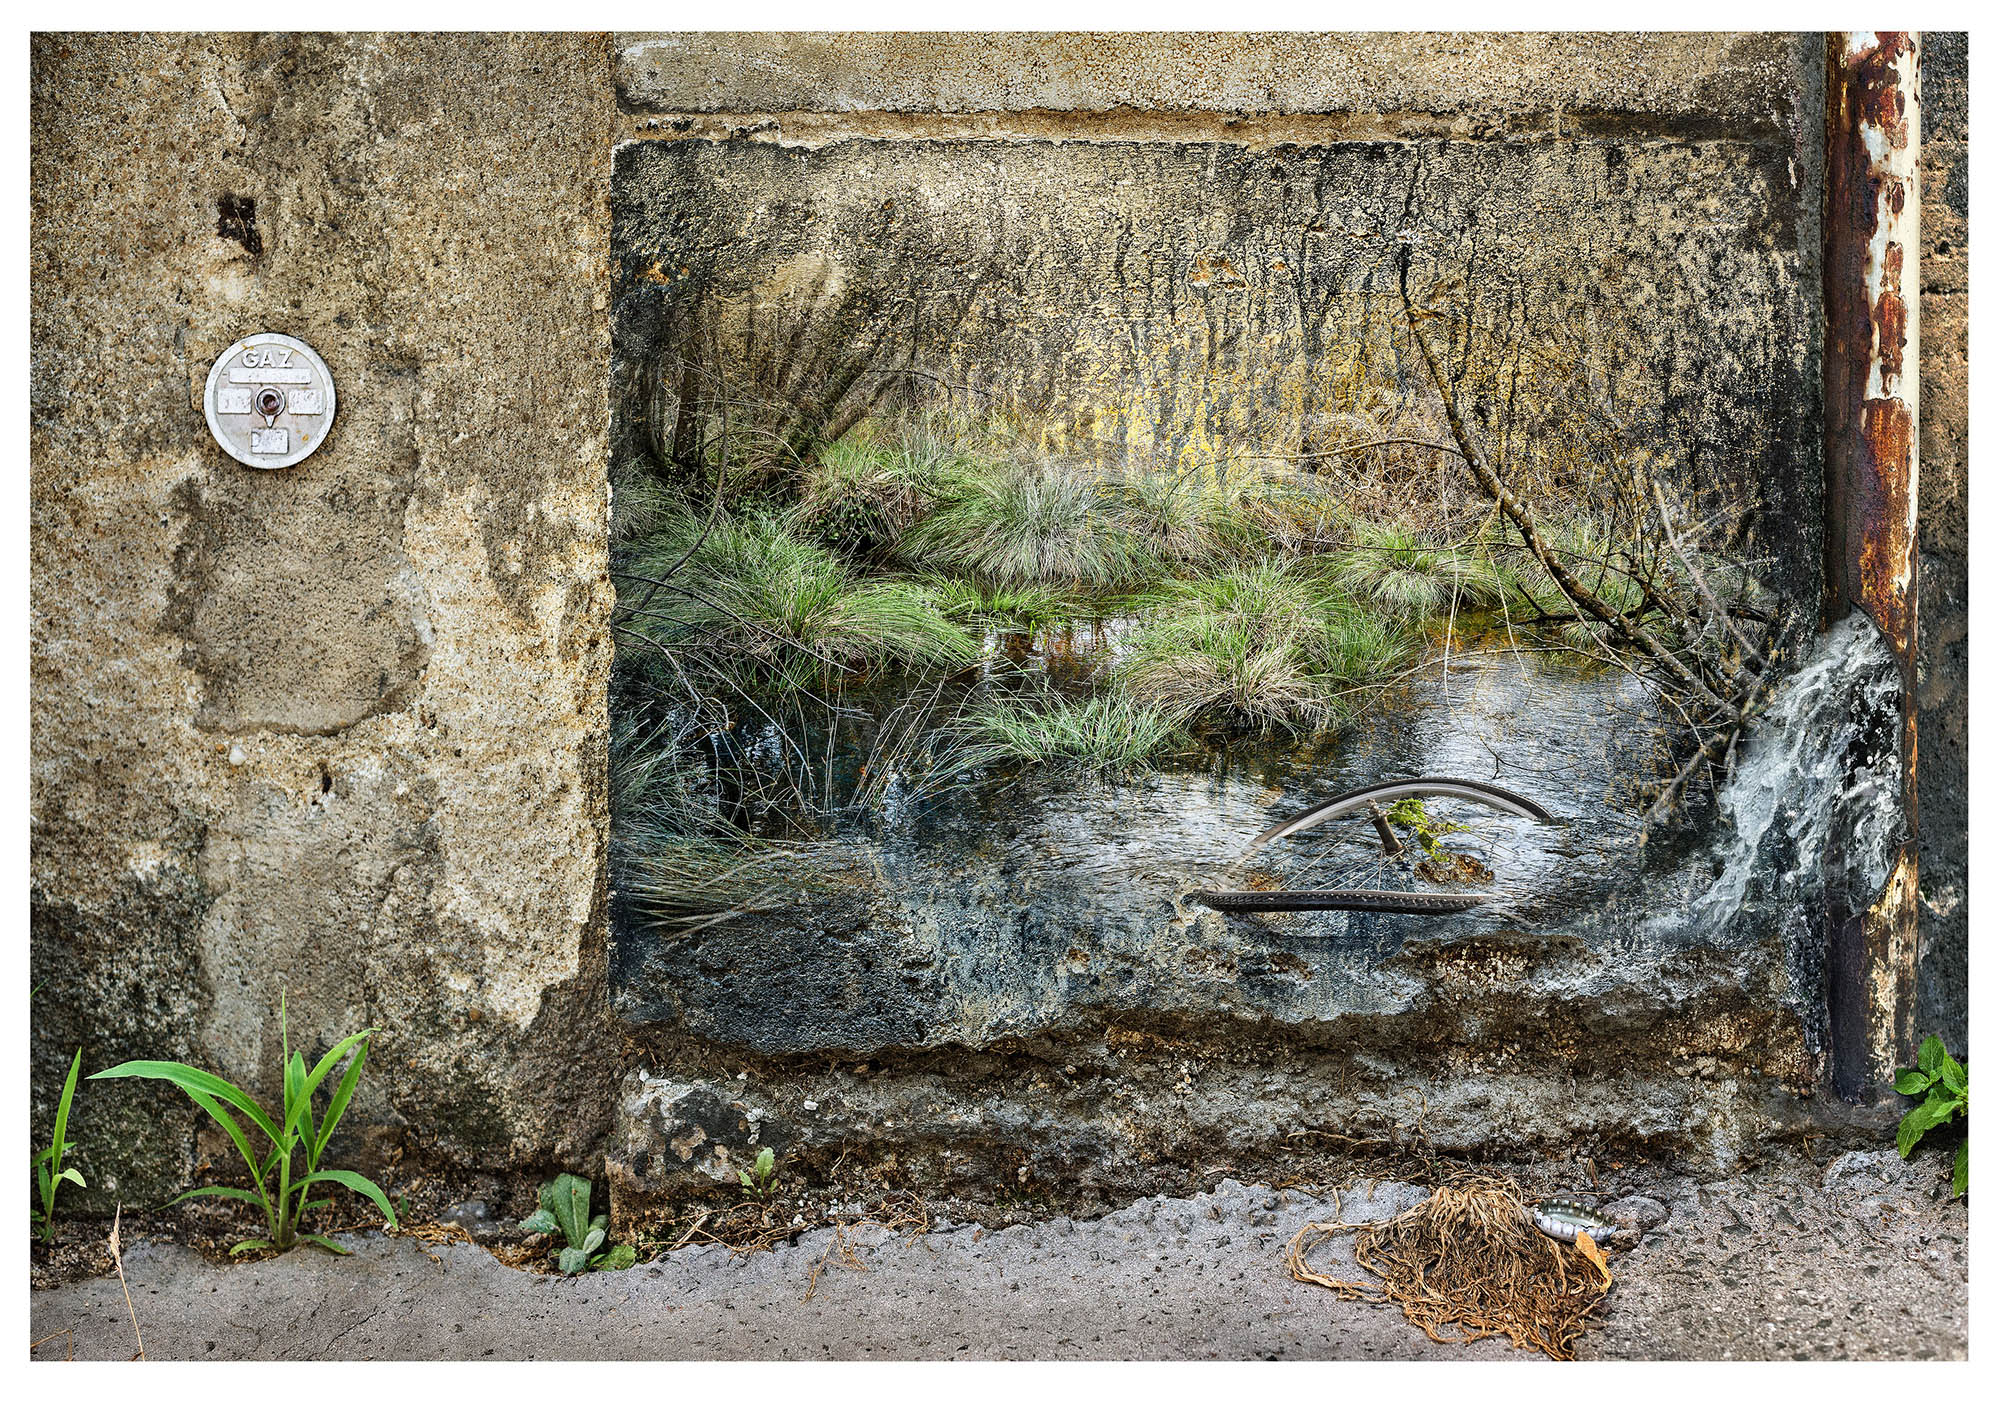 6th composite photograph in series: on a wall a gentle woodland stream scene is superimposed all spoiled by a buckled bicycle wheel discarded in the water